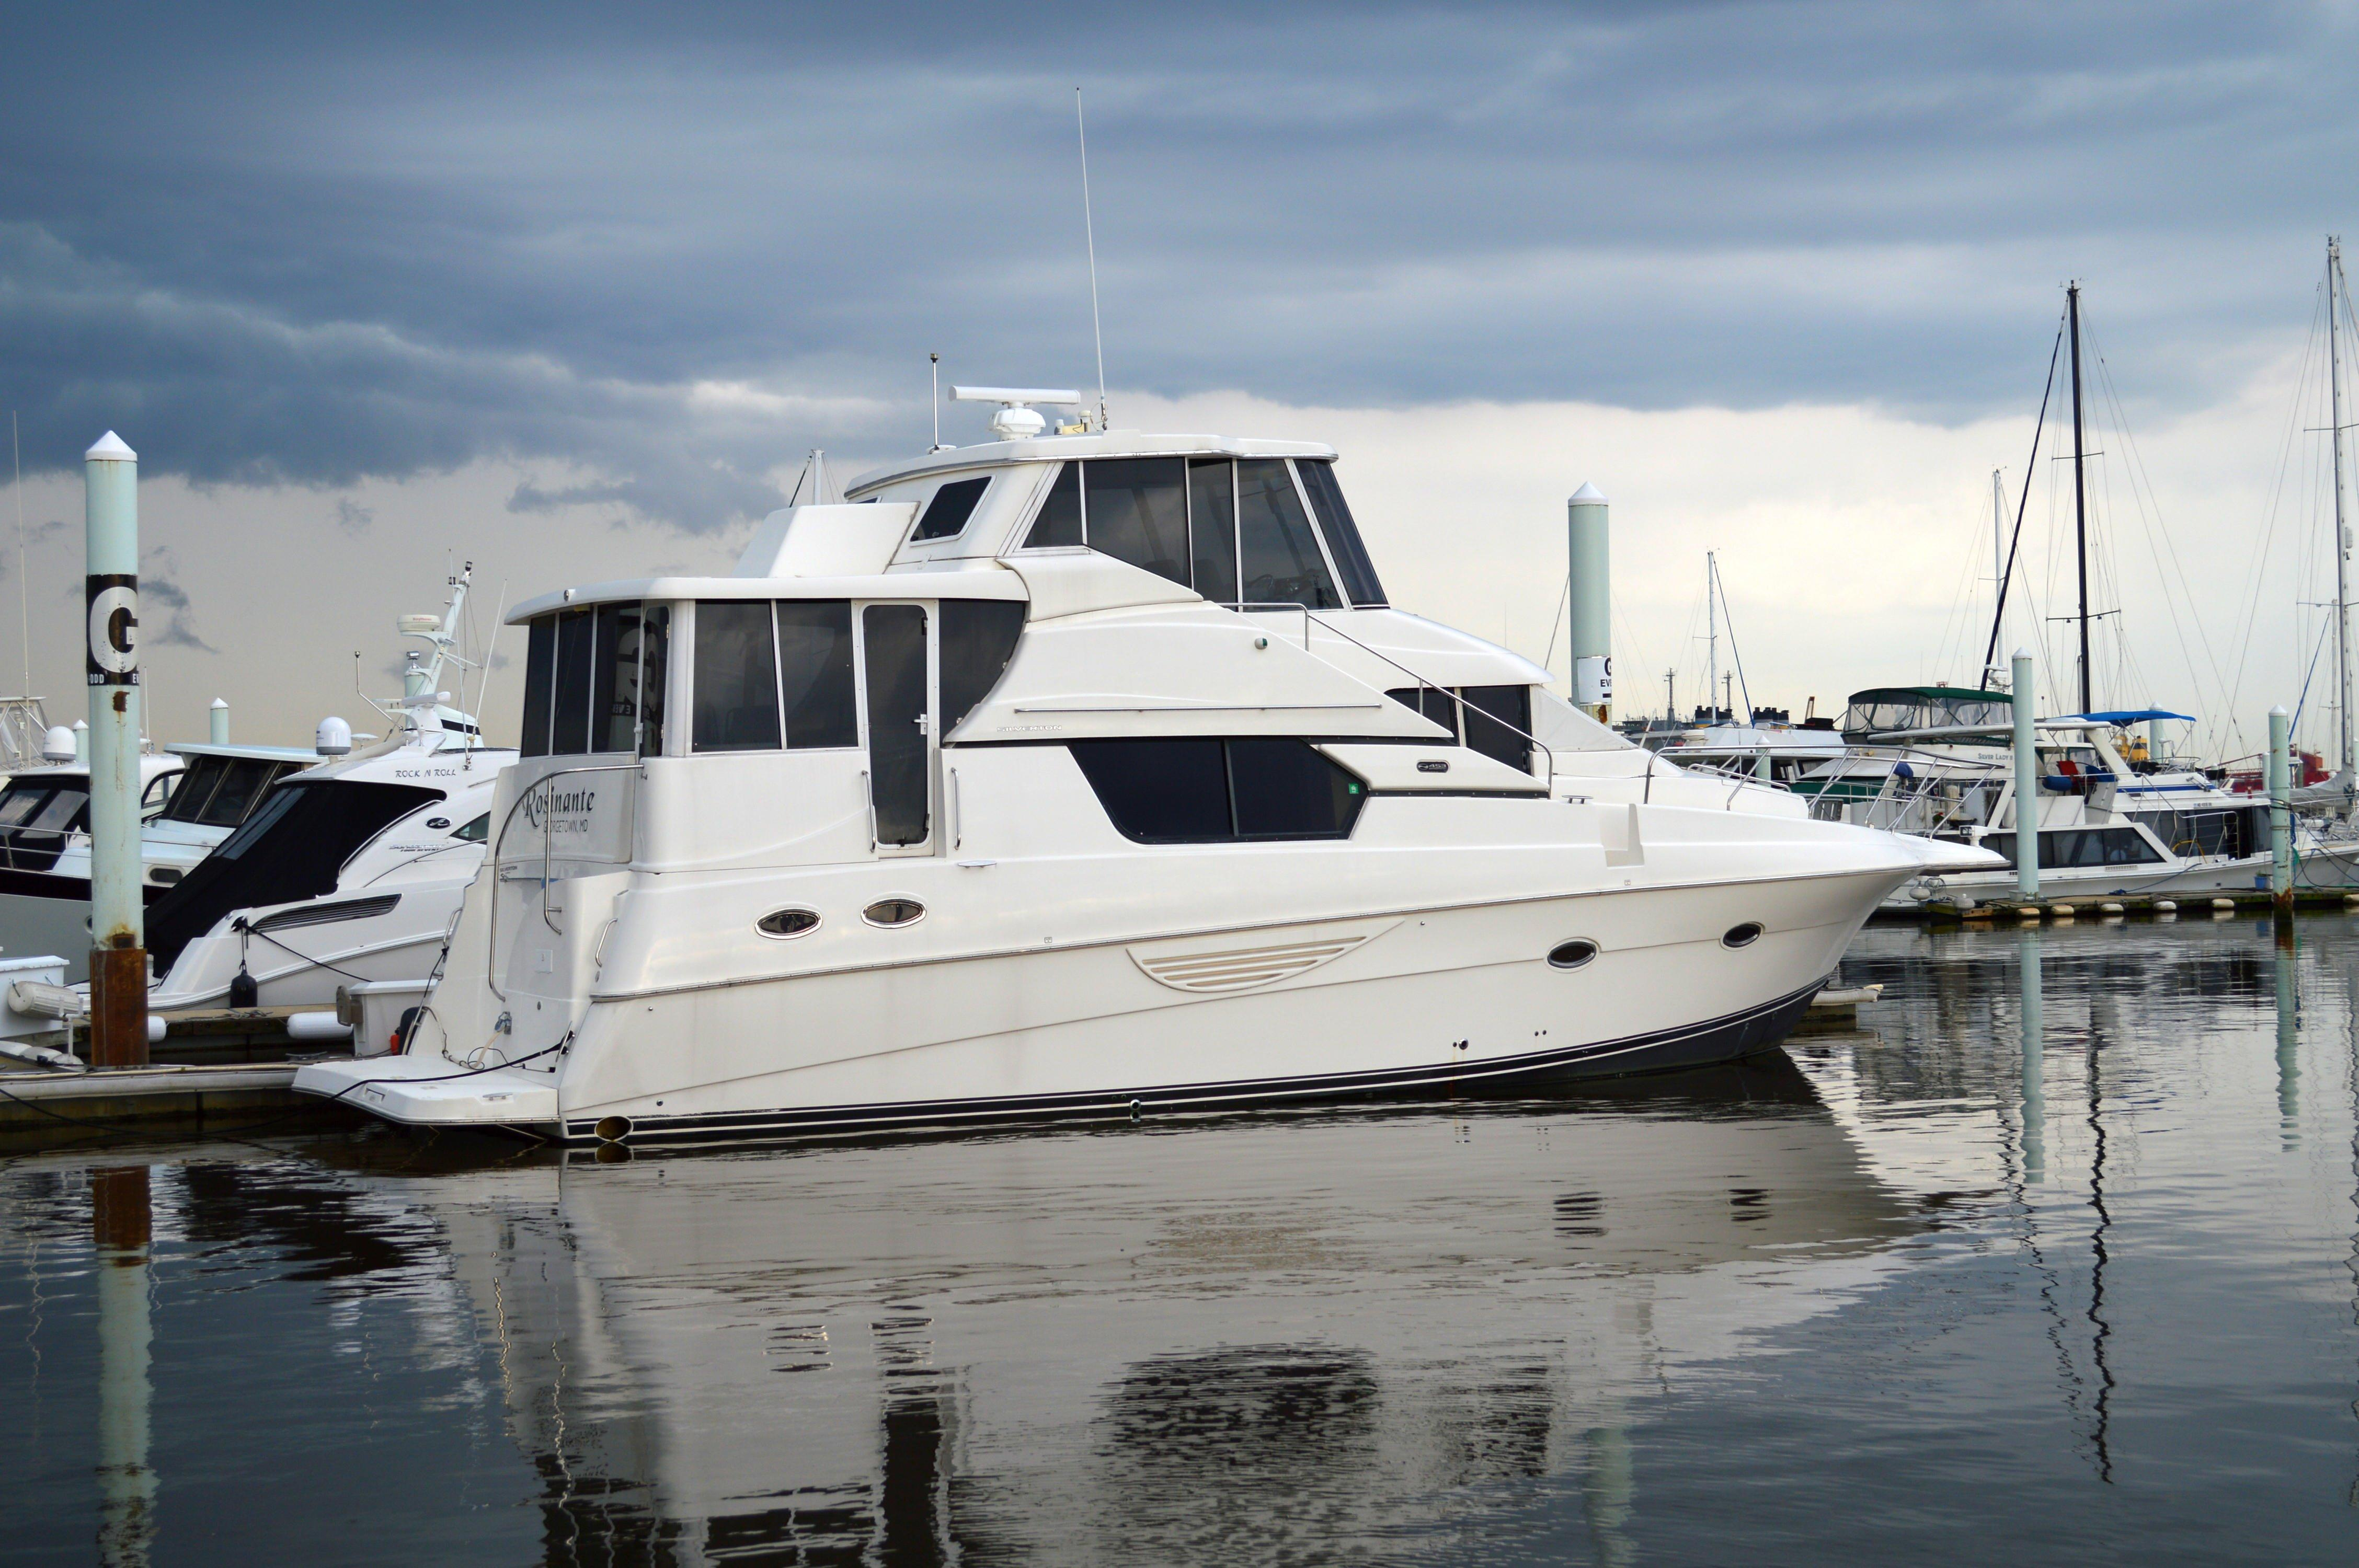 2002 45 silverton for sale in baltimore md us bluewater for Outboard motors for sale maryland